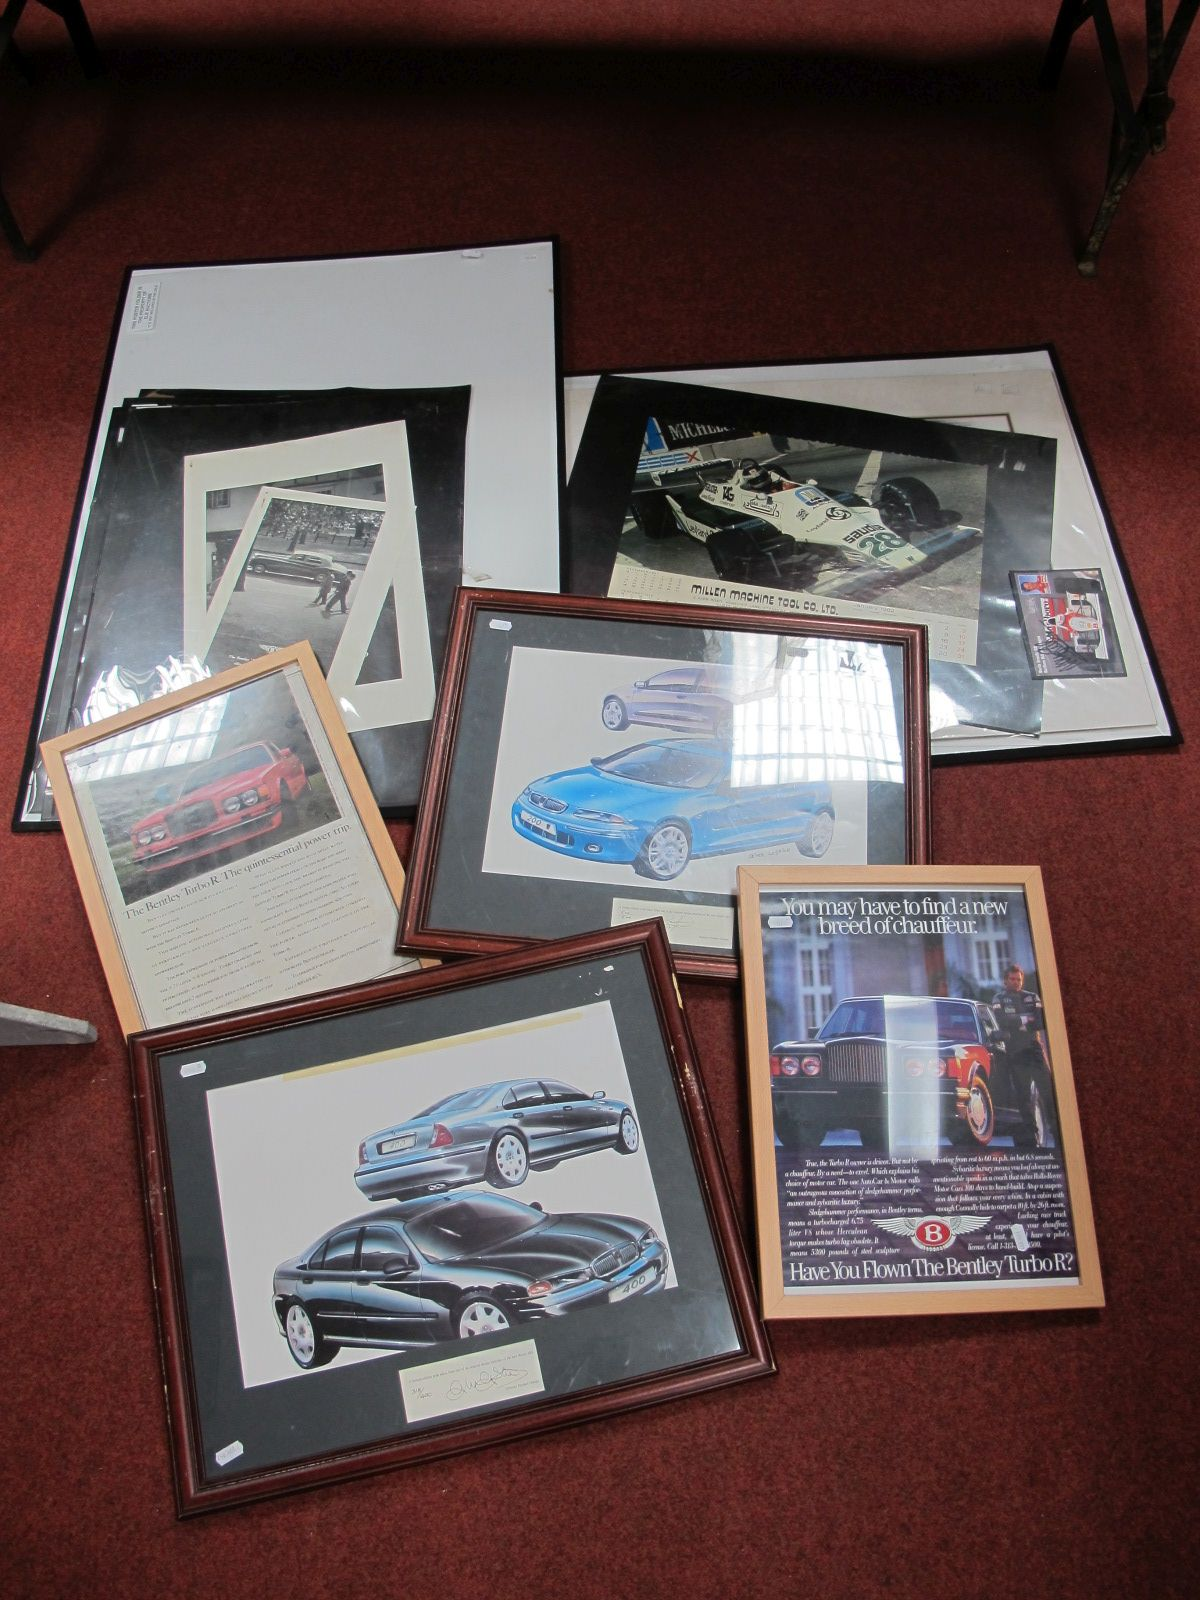 Lot 54 - Two limited Edition Prints, of original Rover 200 and 400 Rover cars, both signed by director of